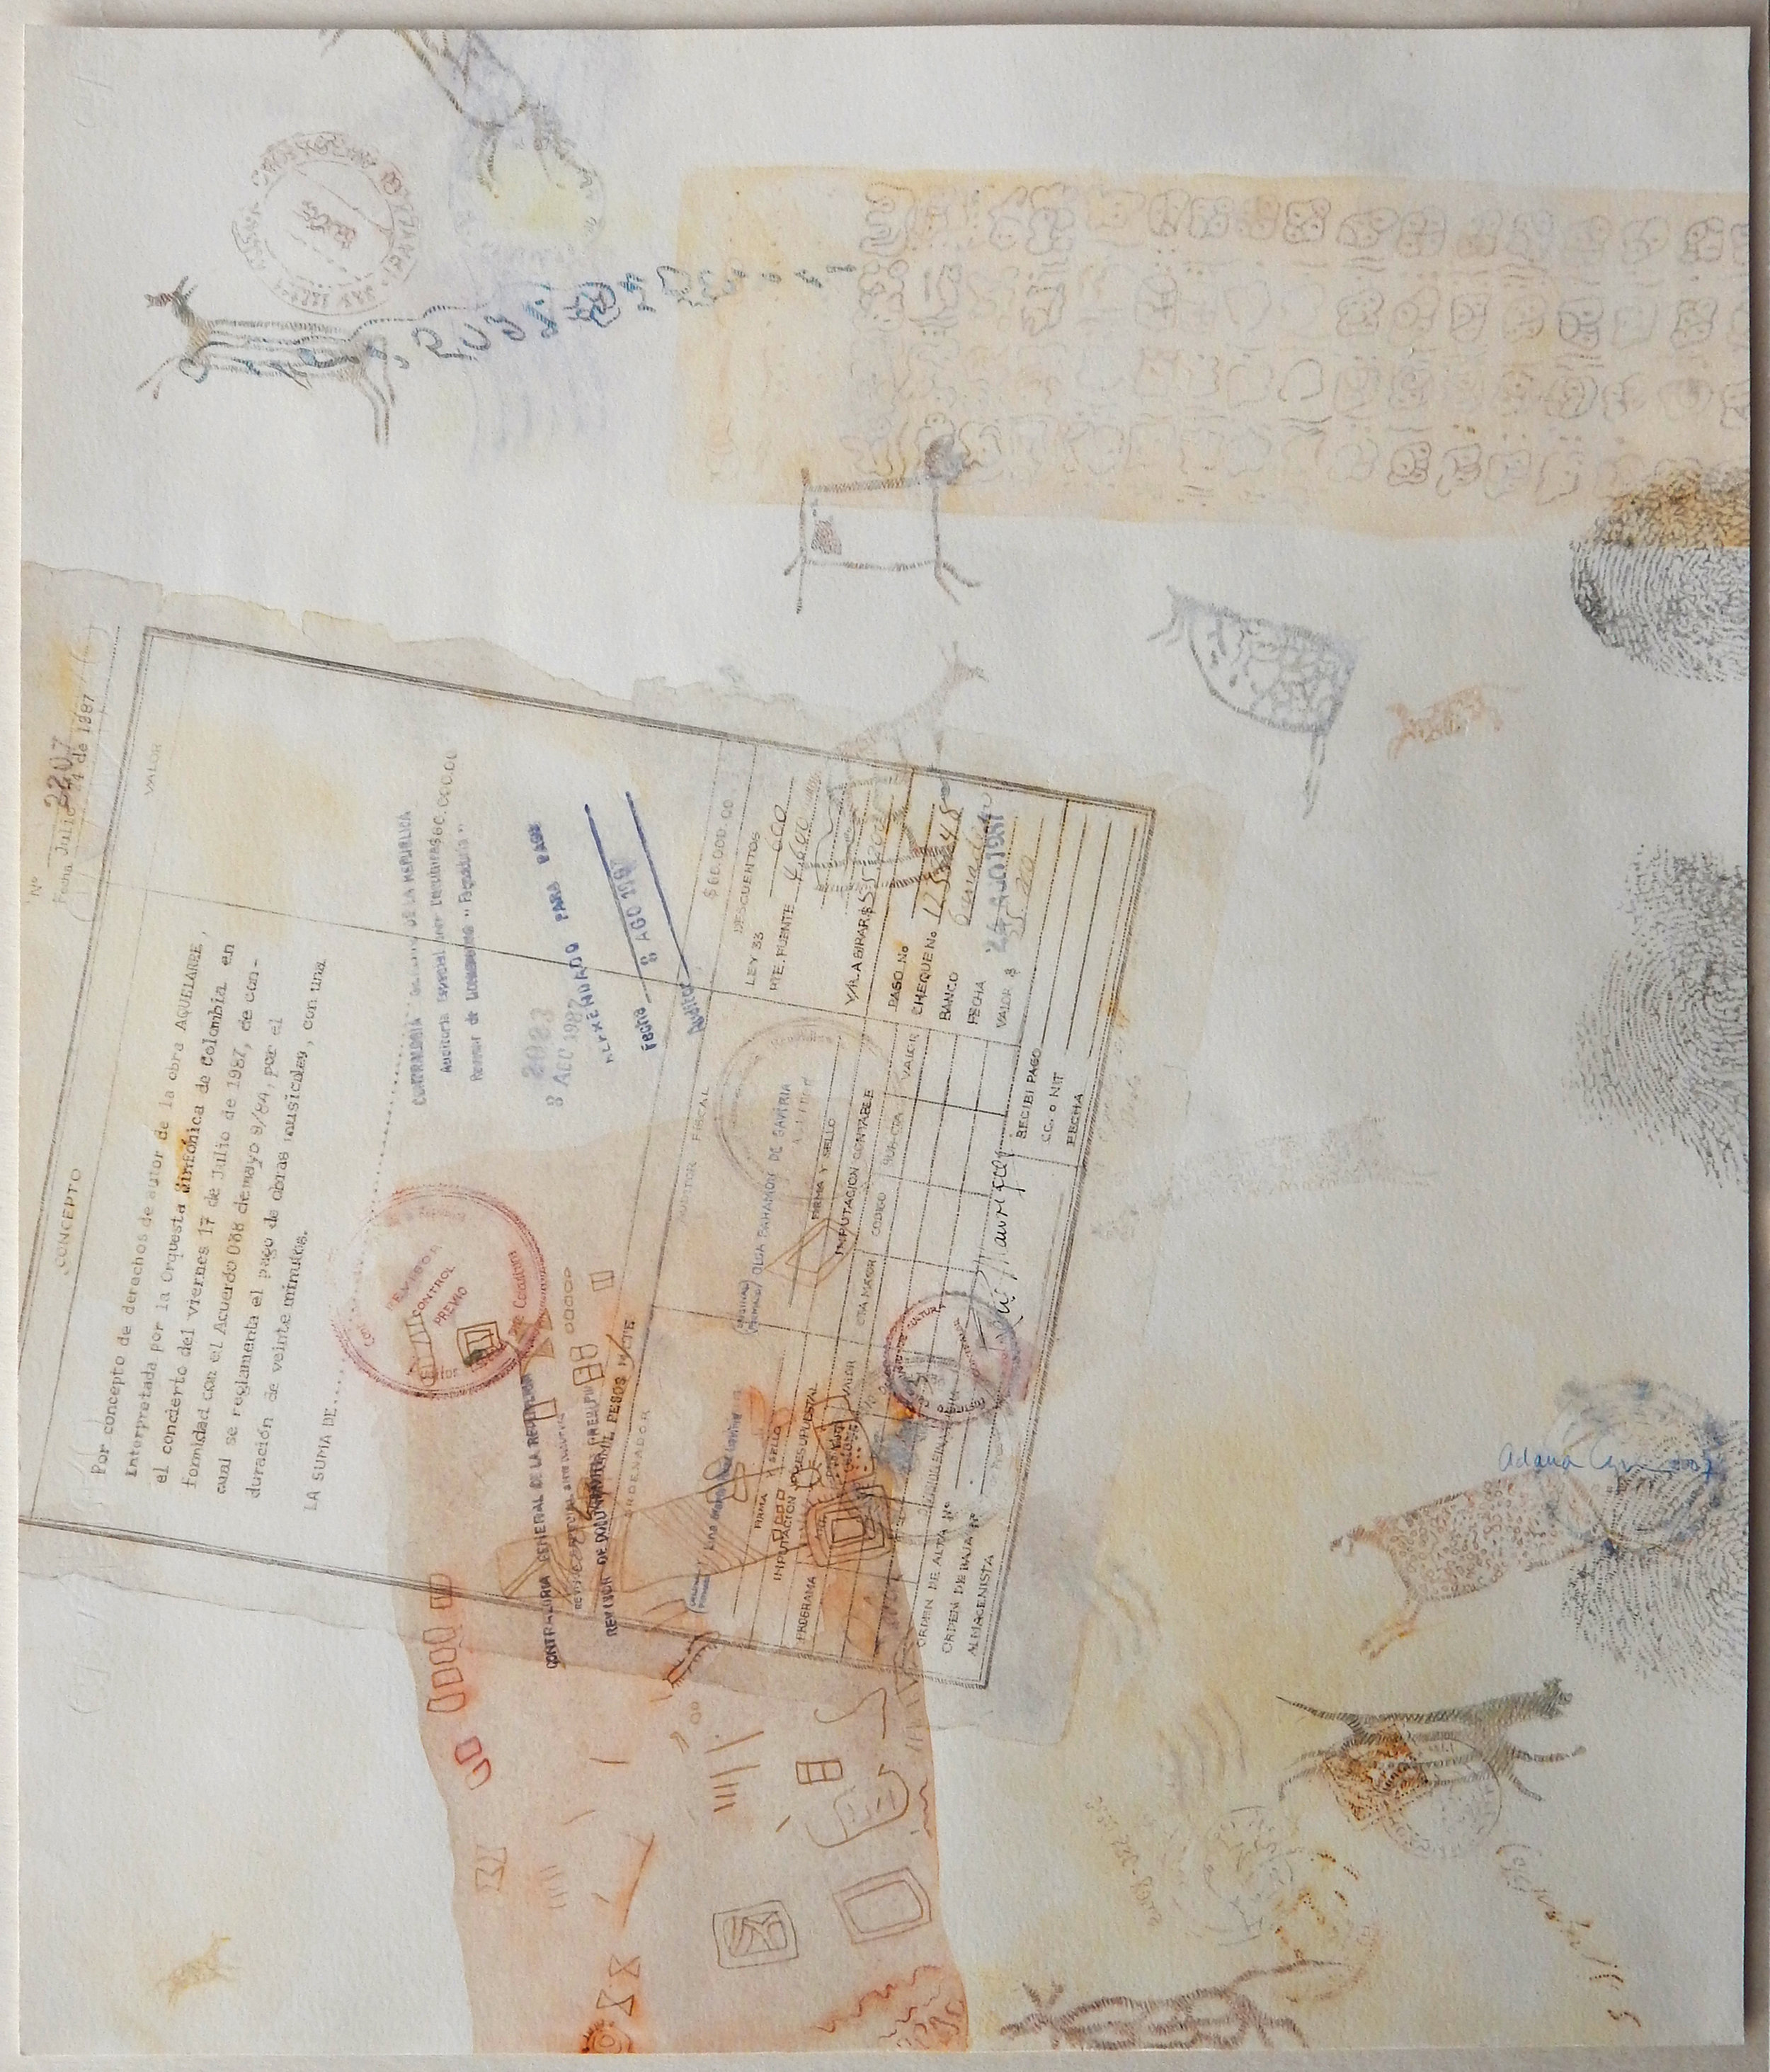 Copyright 2007, Graphite, watercolor, pen and ink, colored pencils on paper, 22.8 x 18.8 inches, (58 x 47.7 cm)